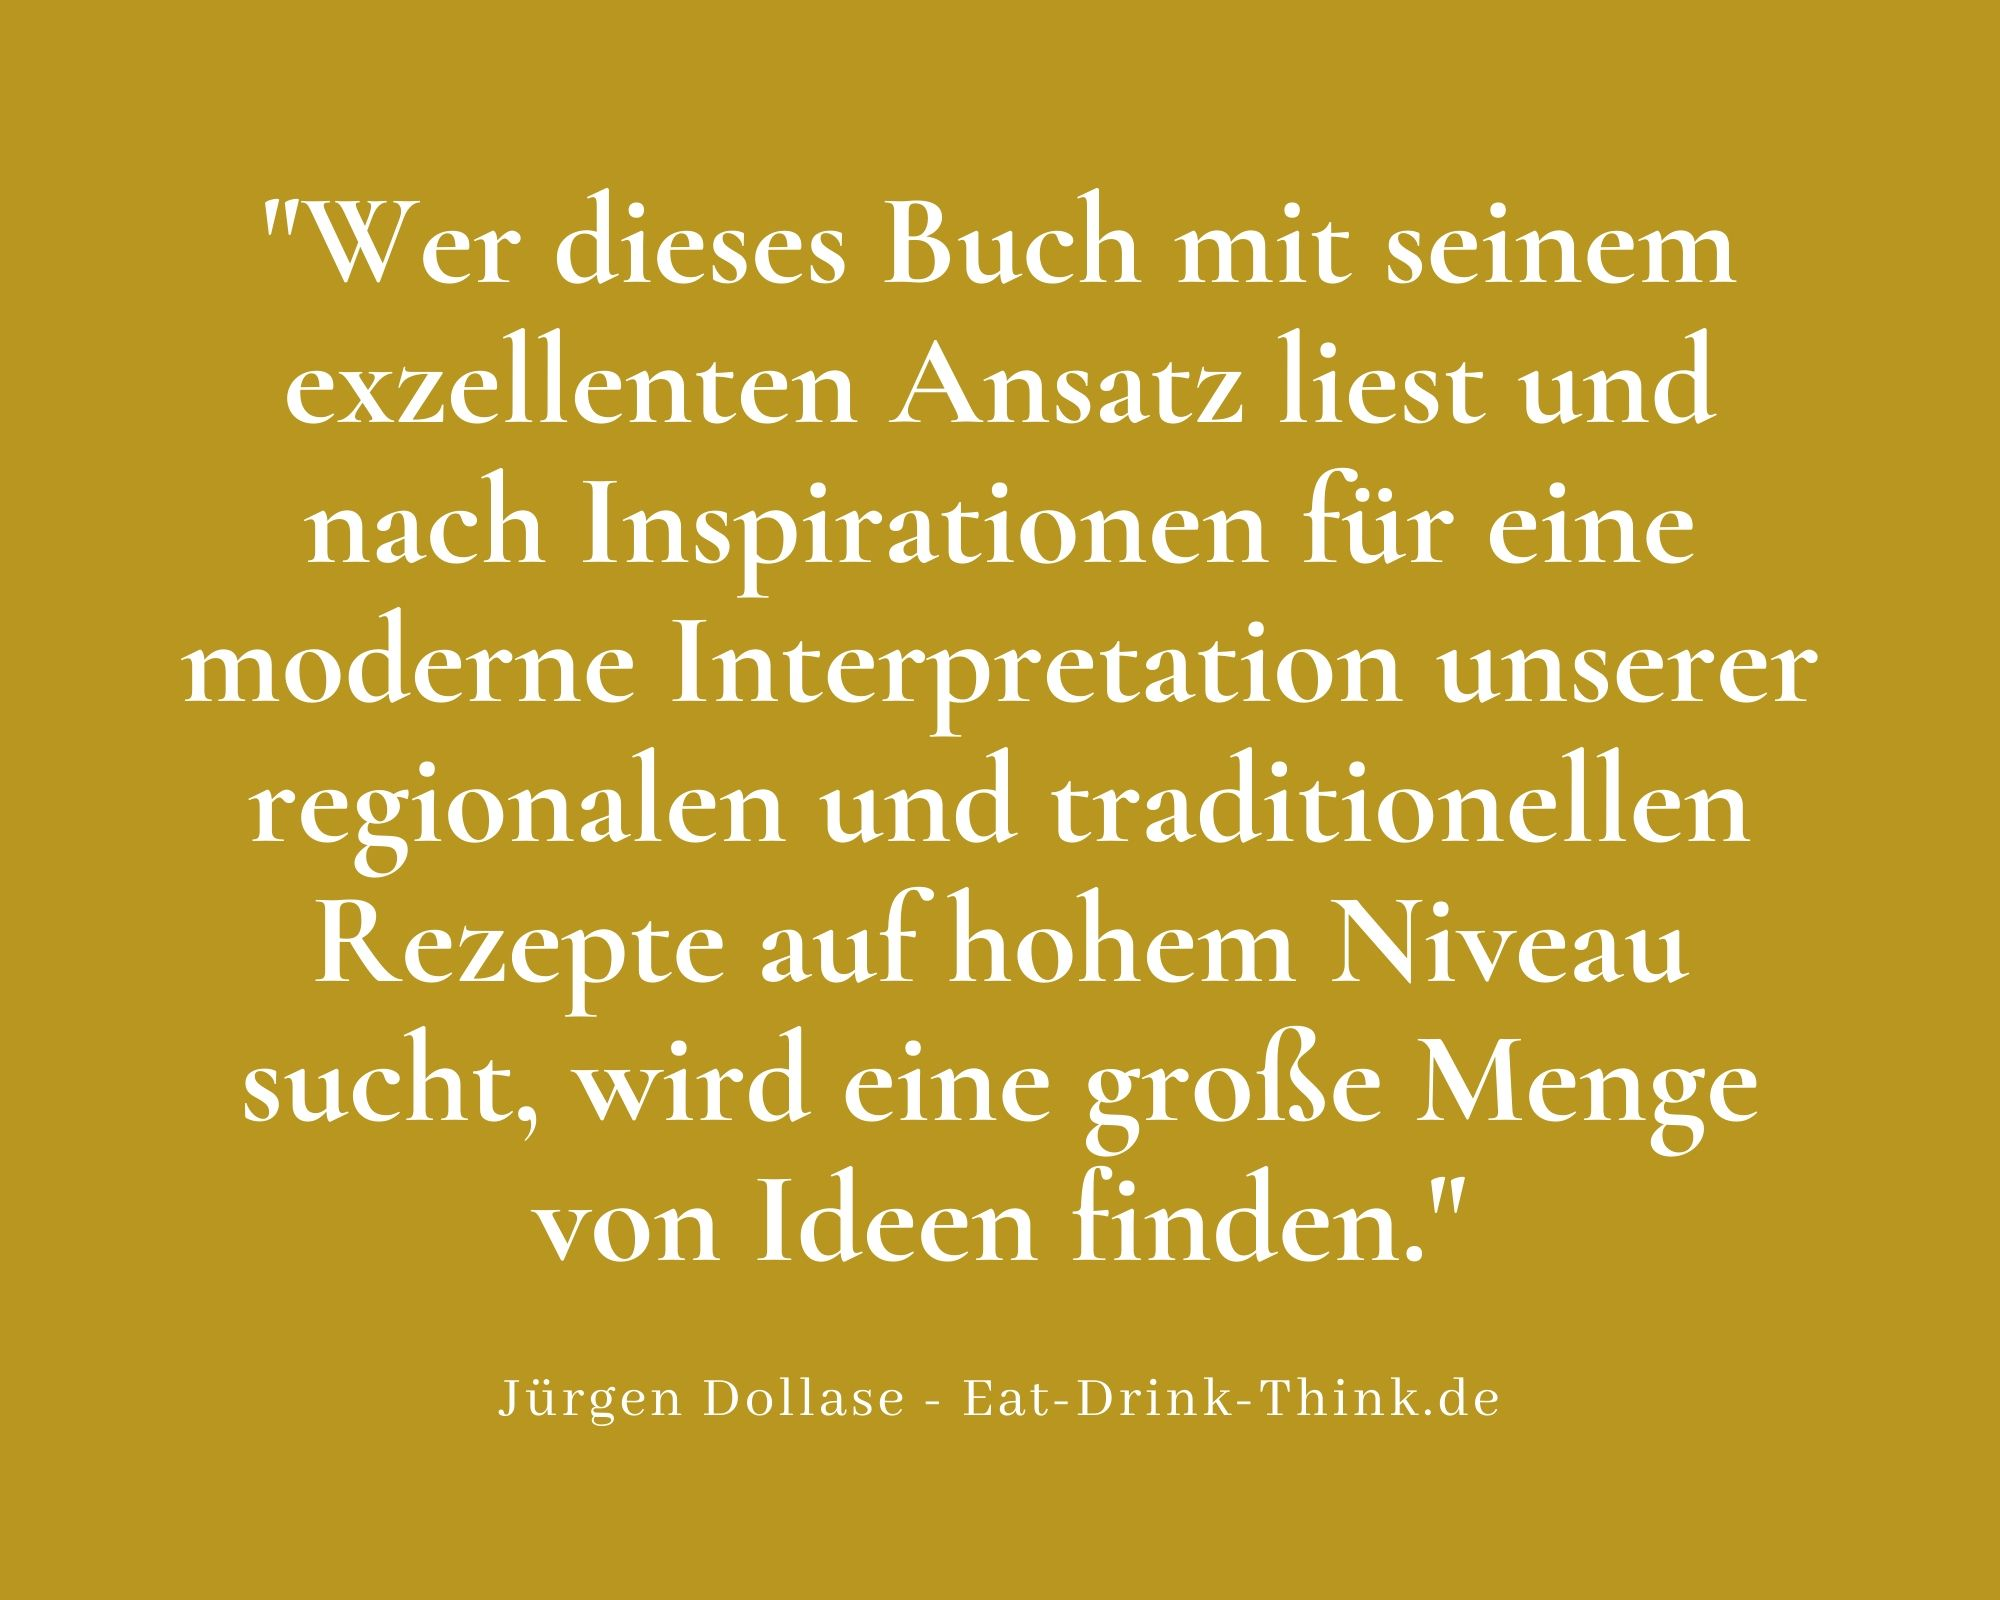 Jürgen Dollase_Eat Drink Think